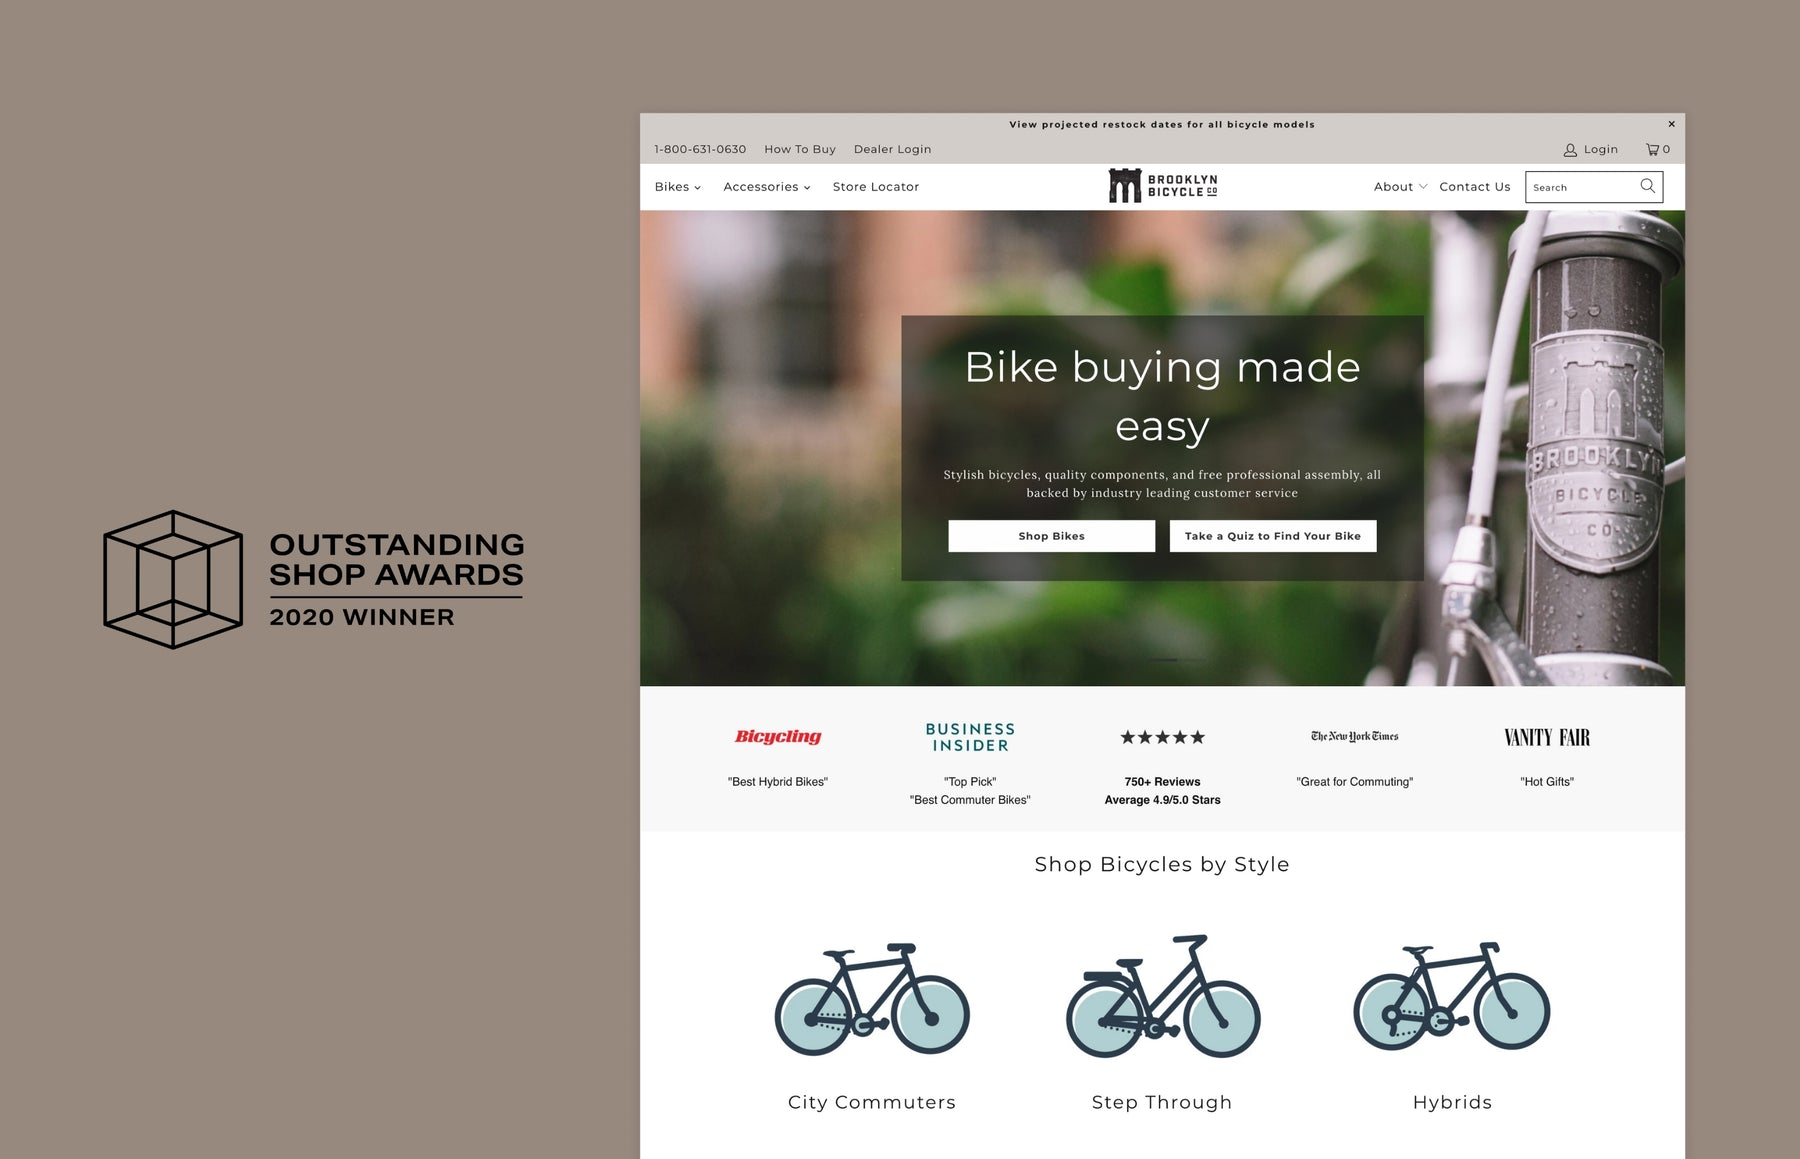 Brooklyn Bicycle Co.: Winner of the Outstanding Shop Award for best sports and recreation online store